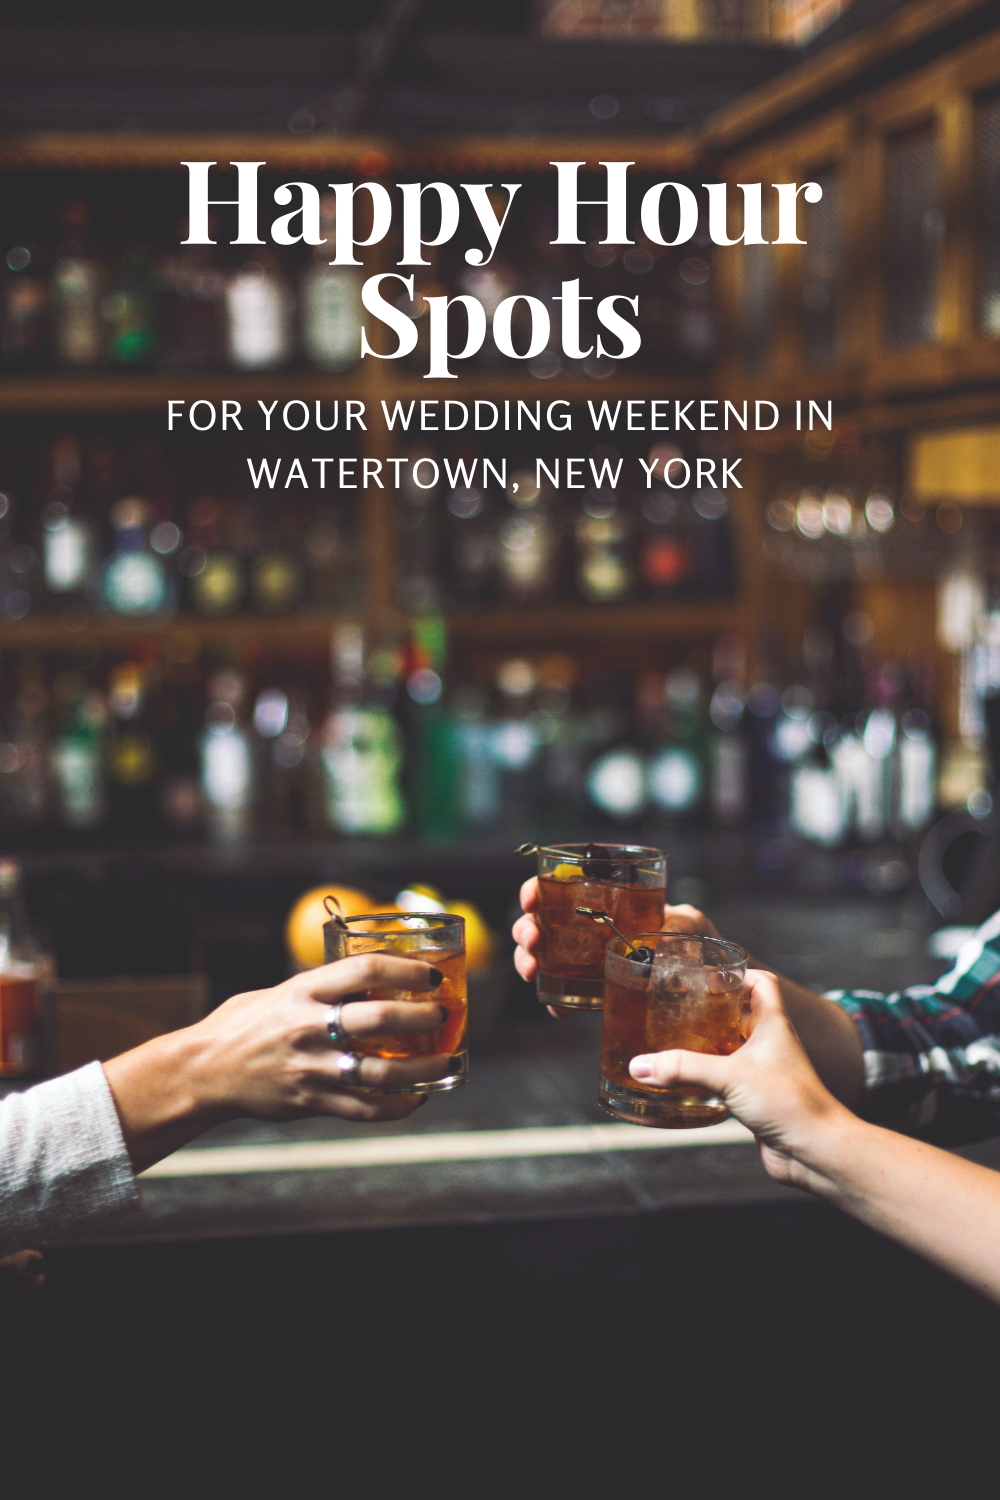 Happy Hour Spots for your Wedding Weekend in Watertown, New York